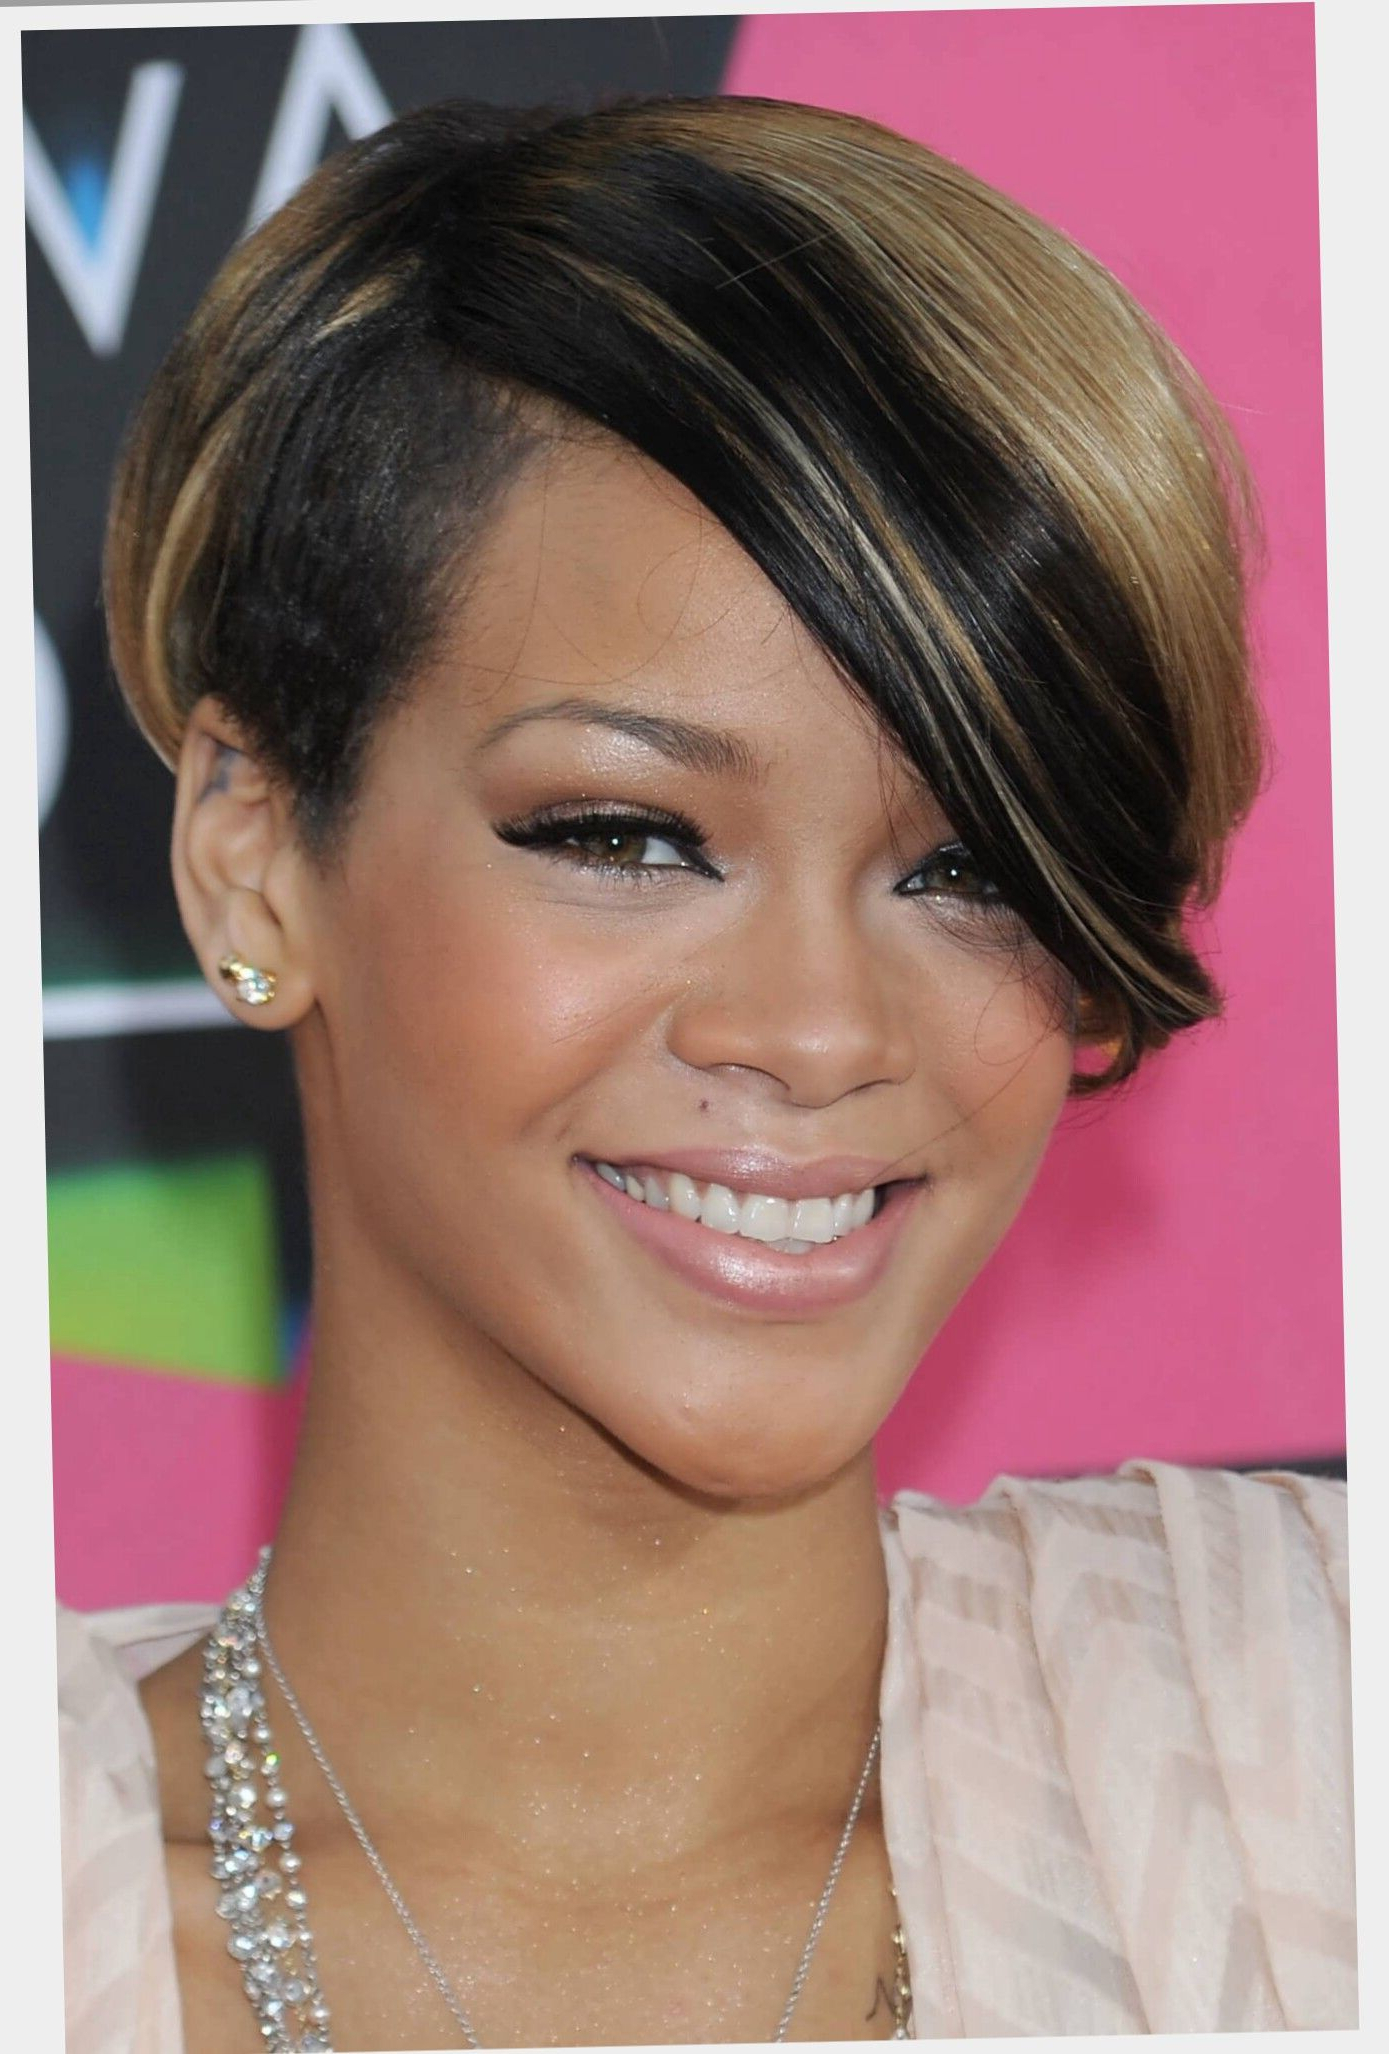 Pinnadine Crewe Morant On Short Hair Don't Care   Pinterest For Short Layered Hairstyles For Black Women (View 2 of 25)